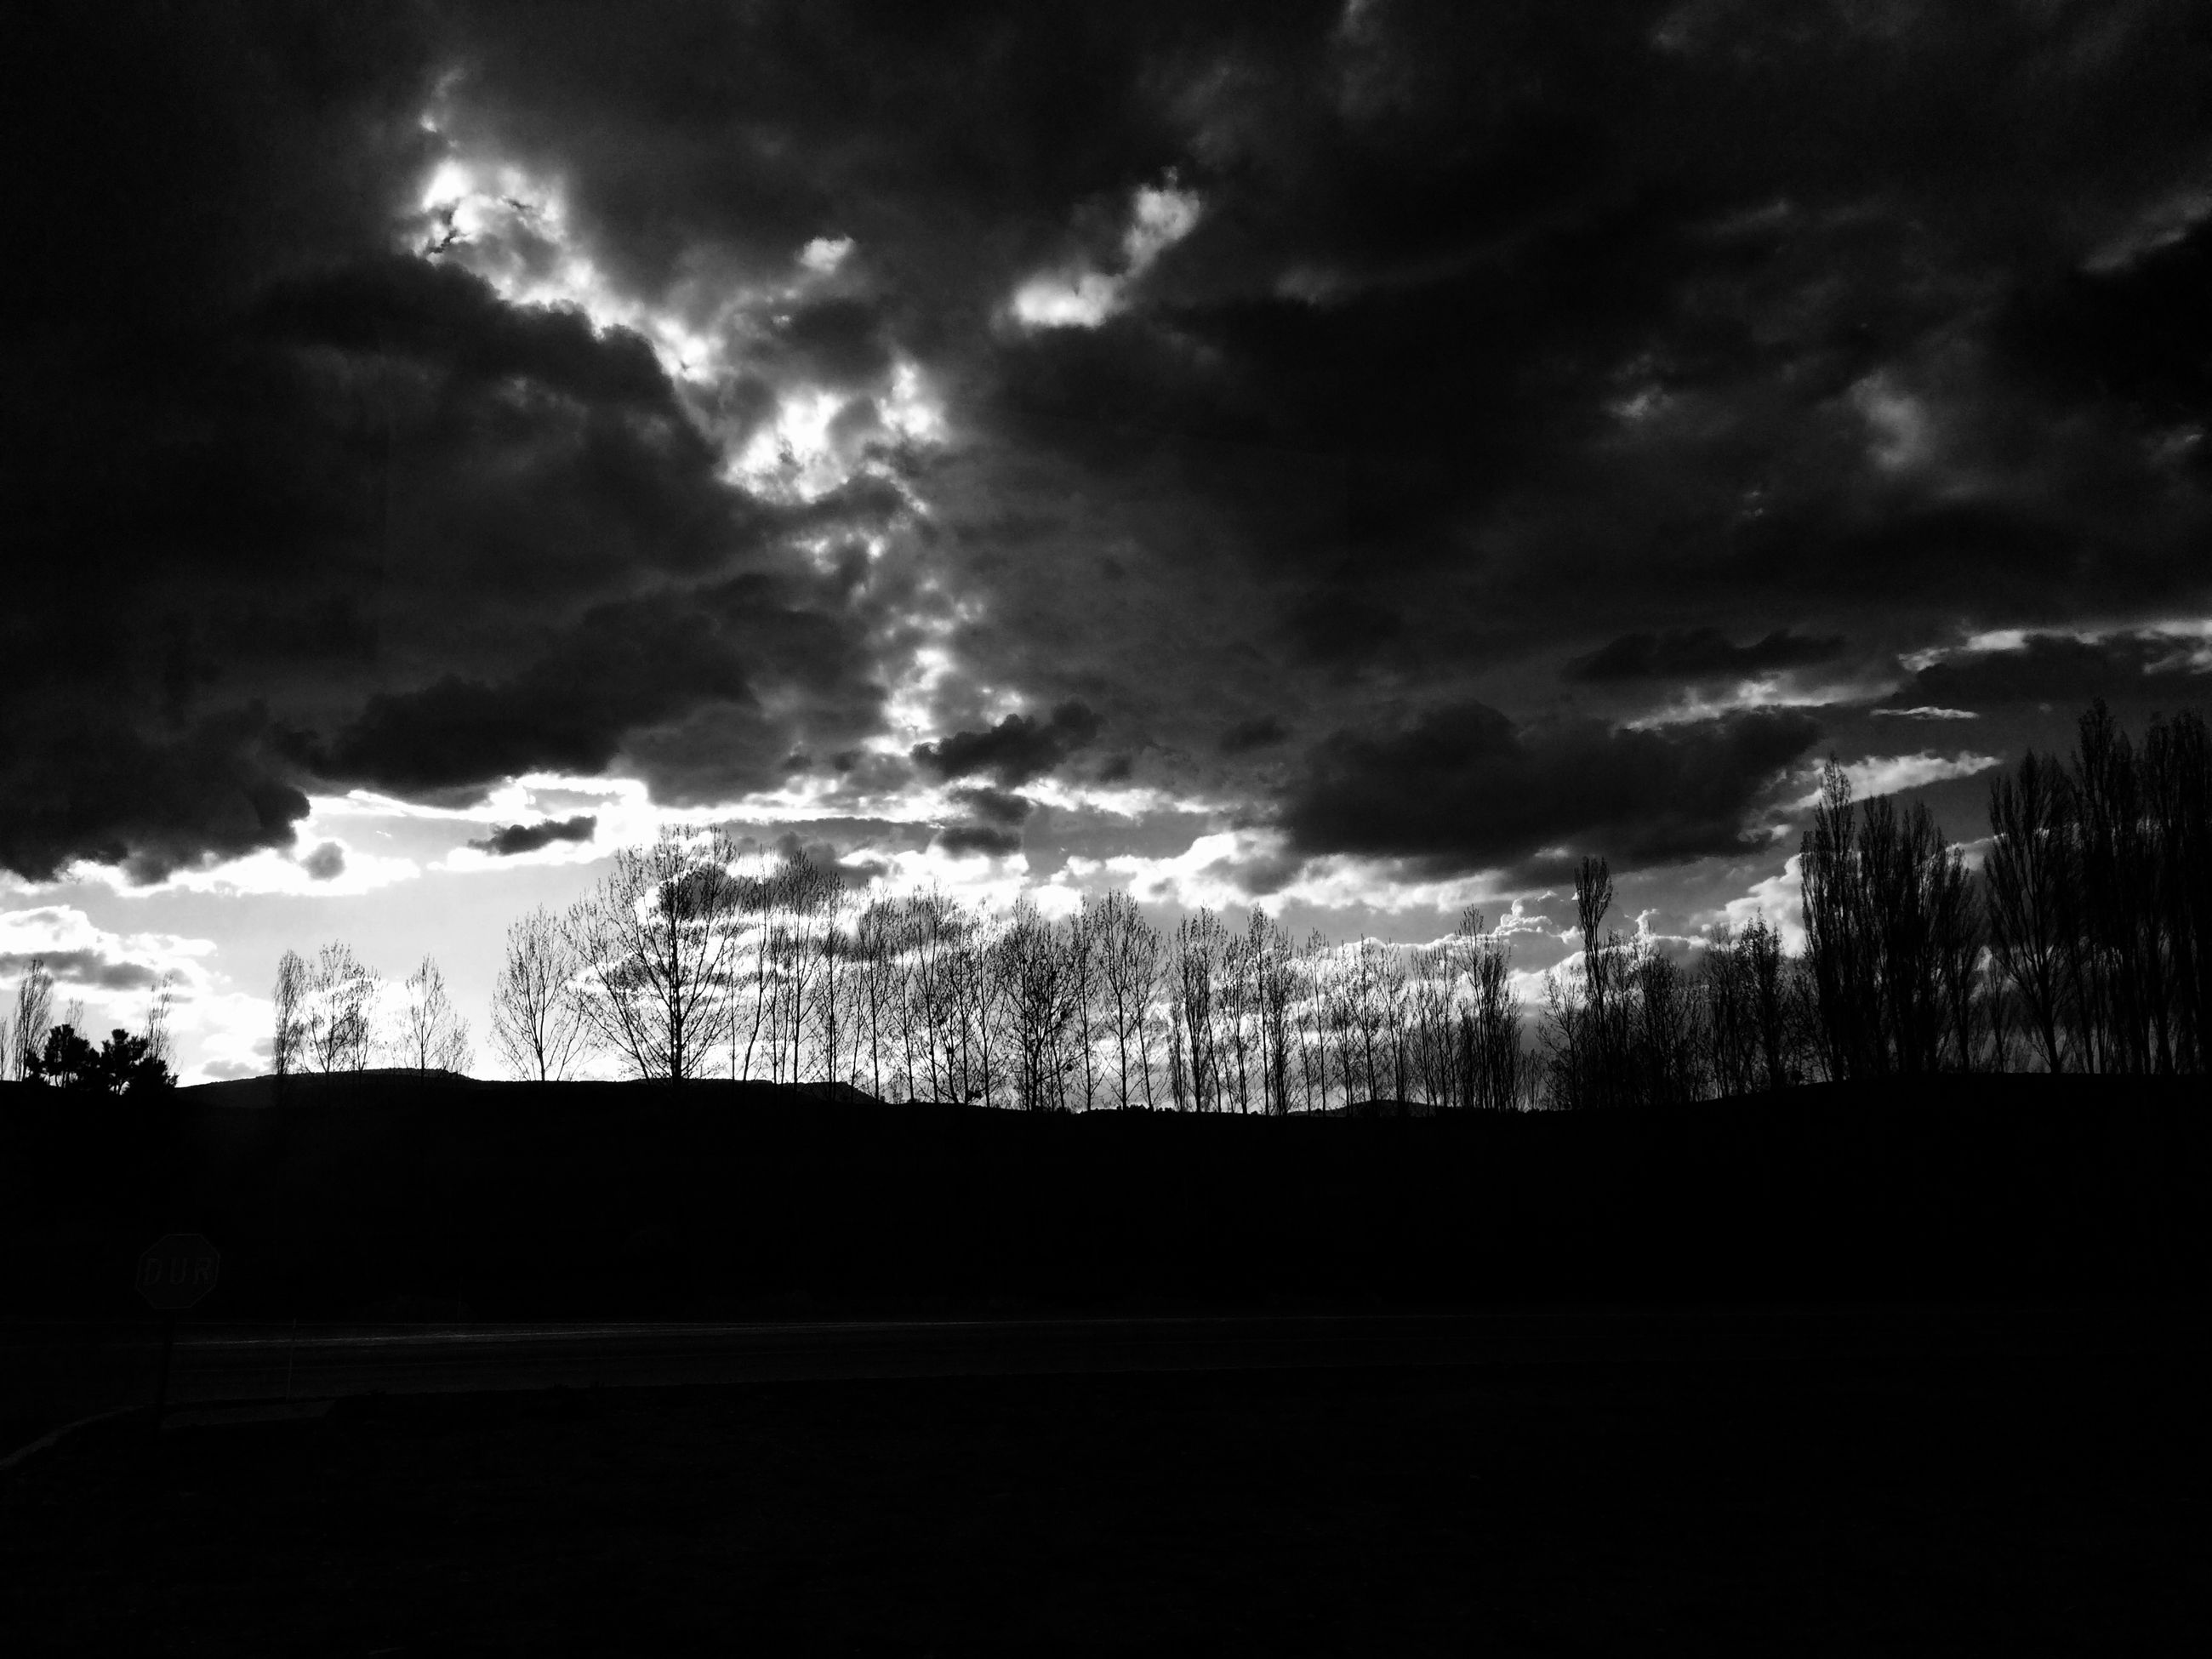 sky, silhouette, cloud - sky, tree, cloudy, tranquility, tranquil scene, landscape, nature, scenics, dark, field, cloud, beauty in nature, dusk, overcast, weather, storm cloud, bare tree, low angle view